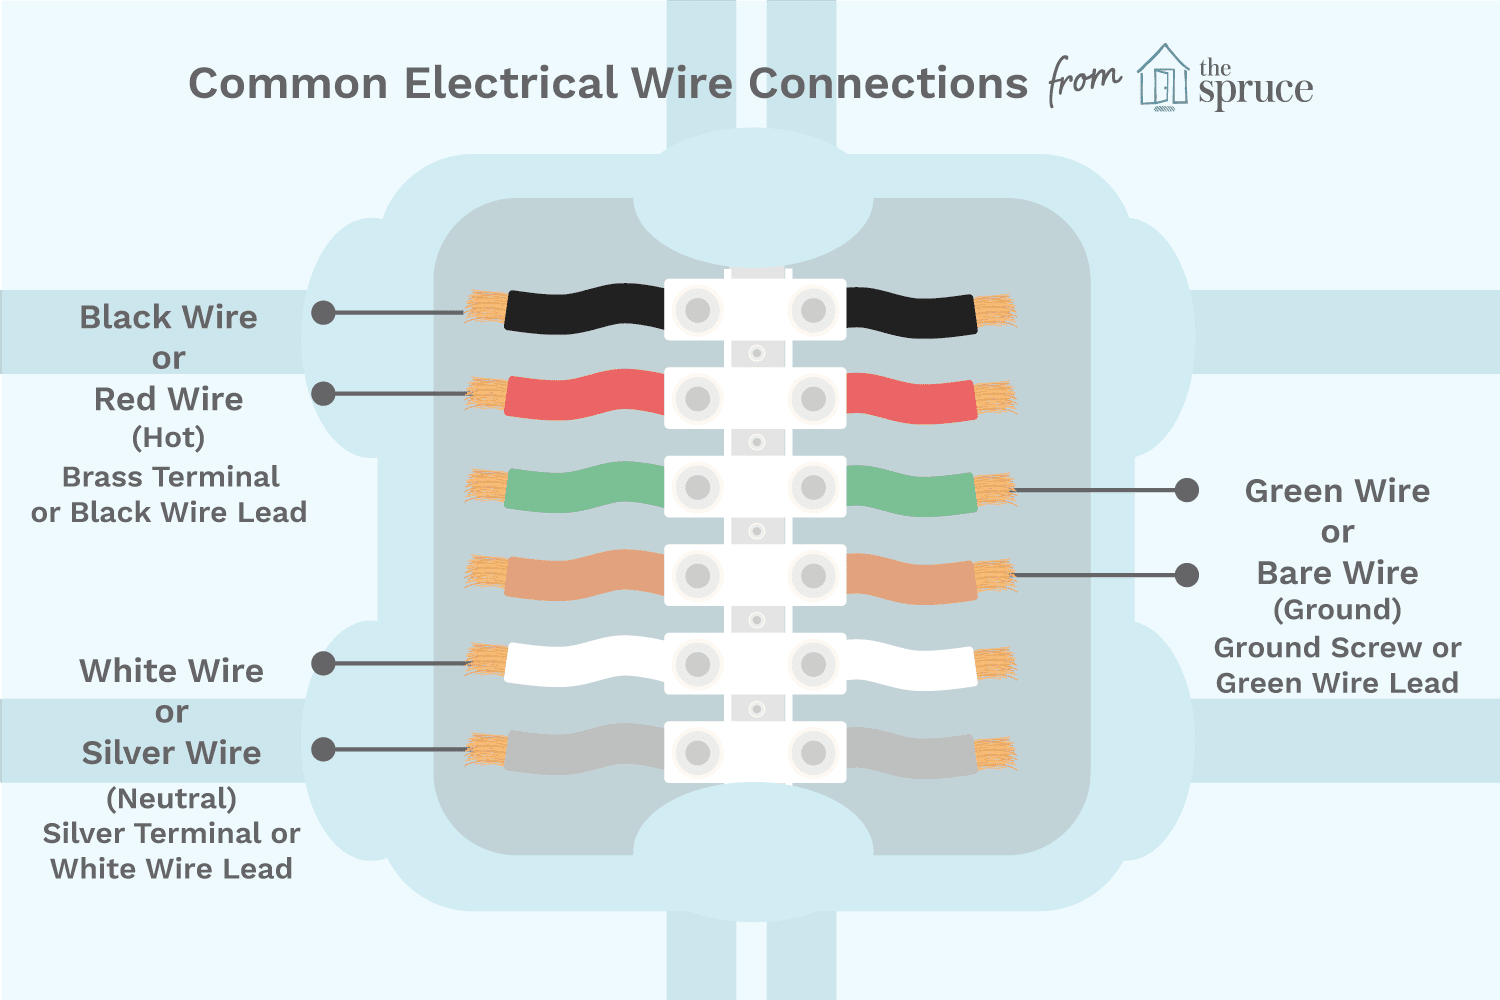 Color Coding Of Electrical Wires And Terminal Screws Basic Wiring Diagrams On Electric